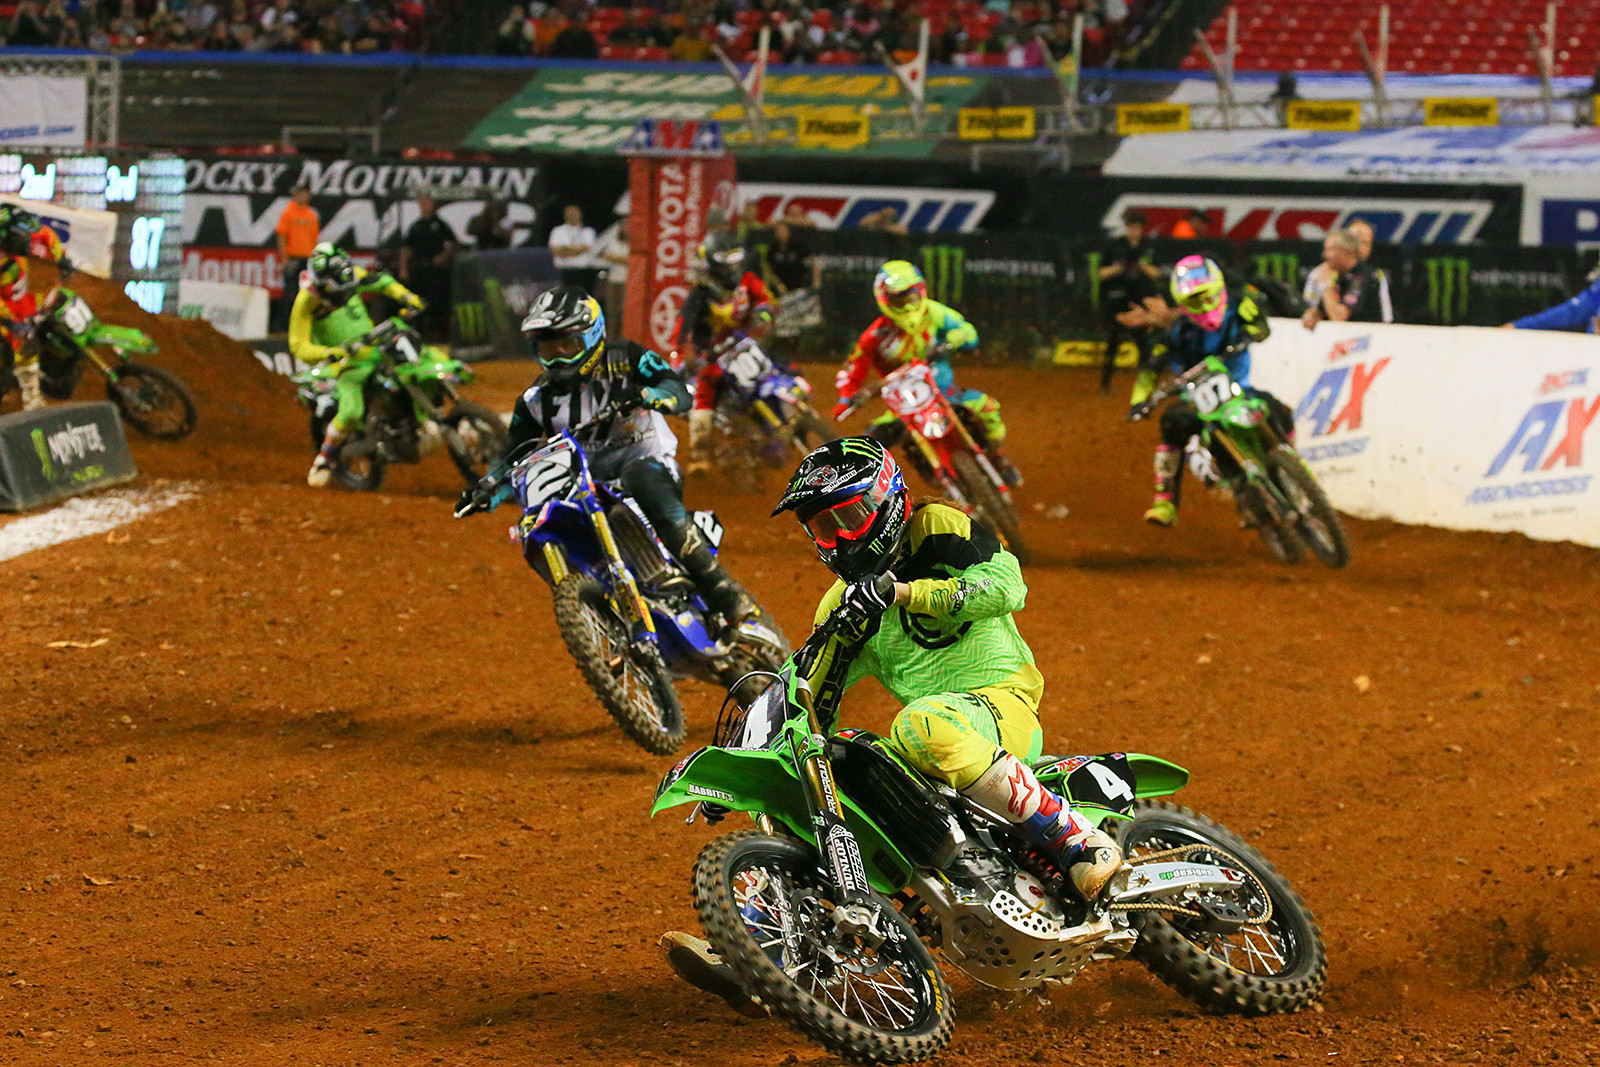 Gared Steinke - Photo Blast: Atlanta Arenacross - Motocross Pictures - Vital MX